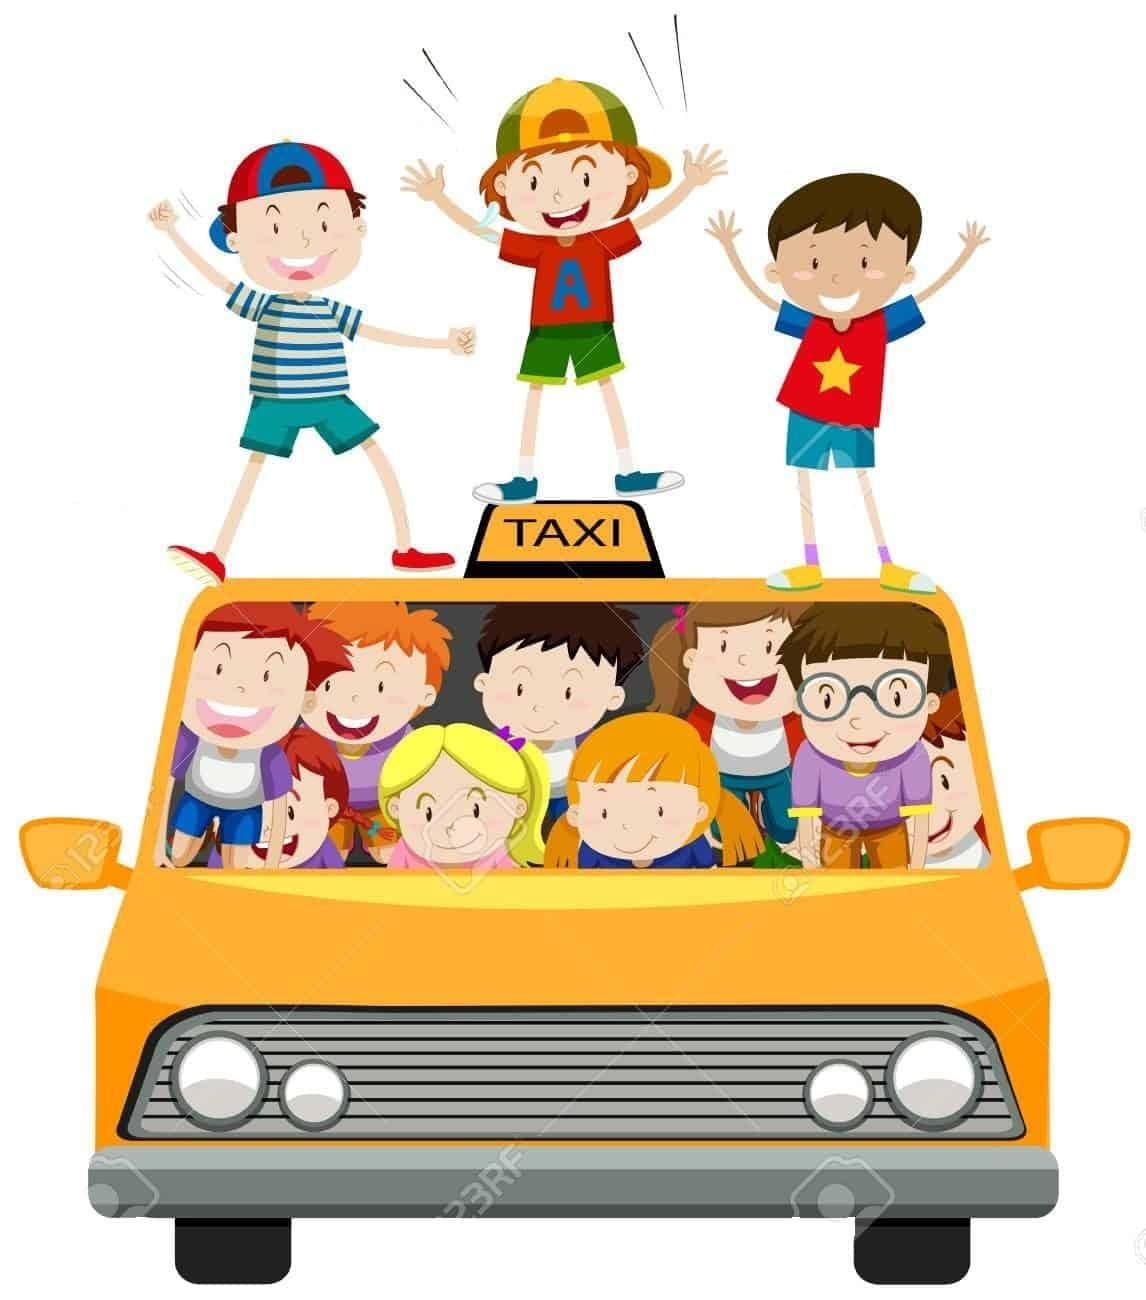 Children riding on taxi